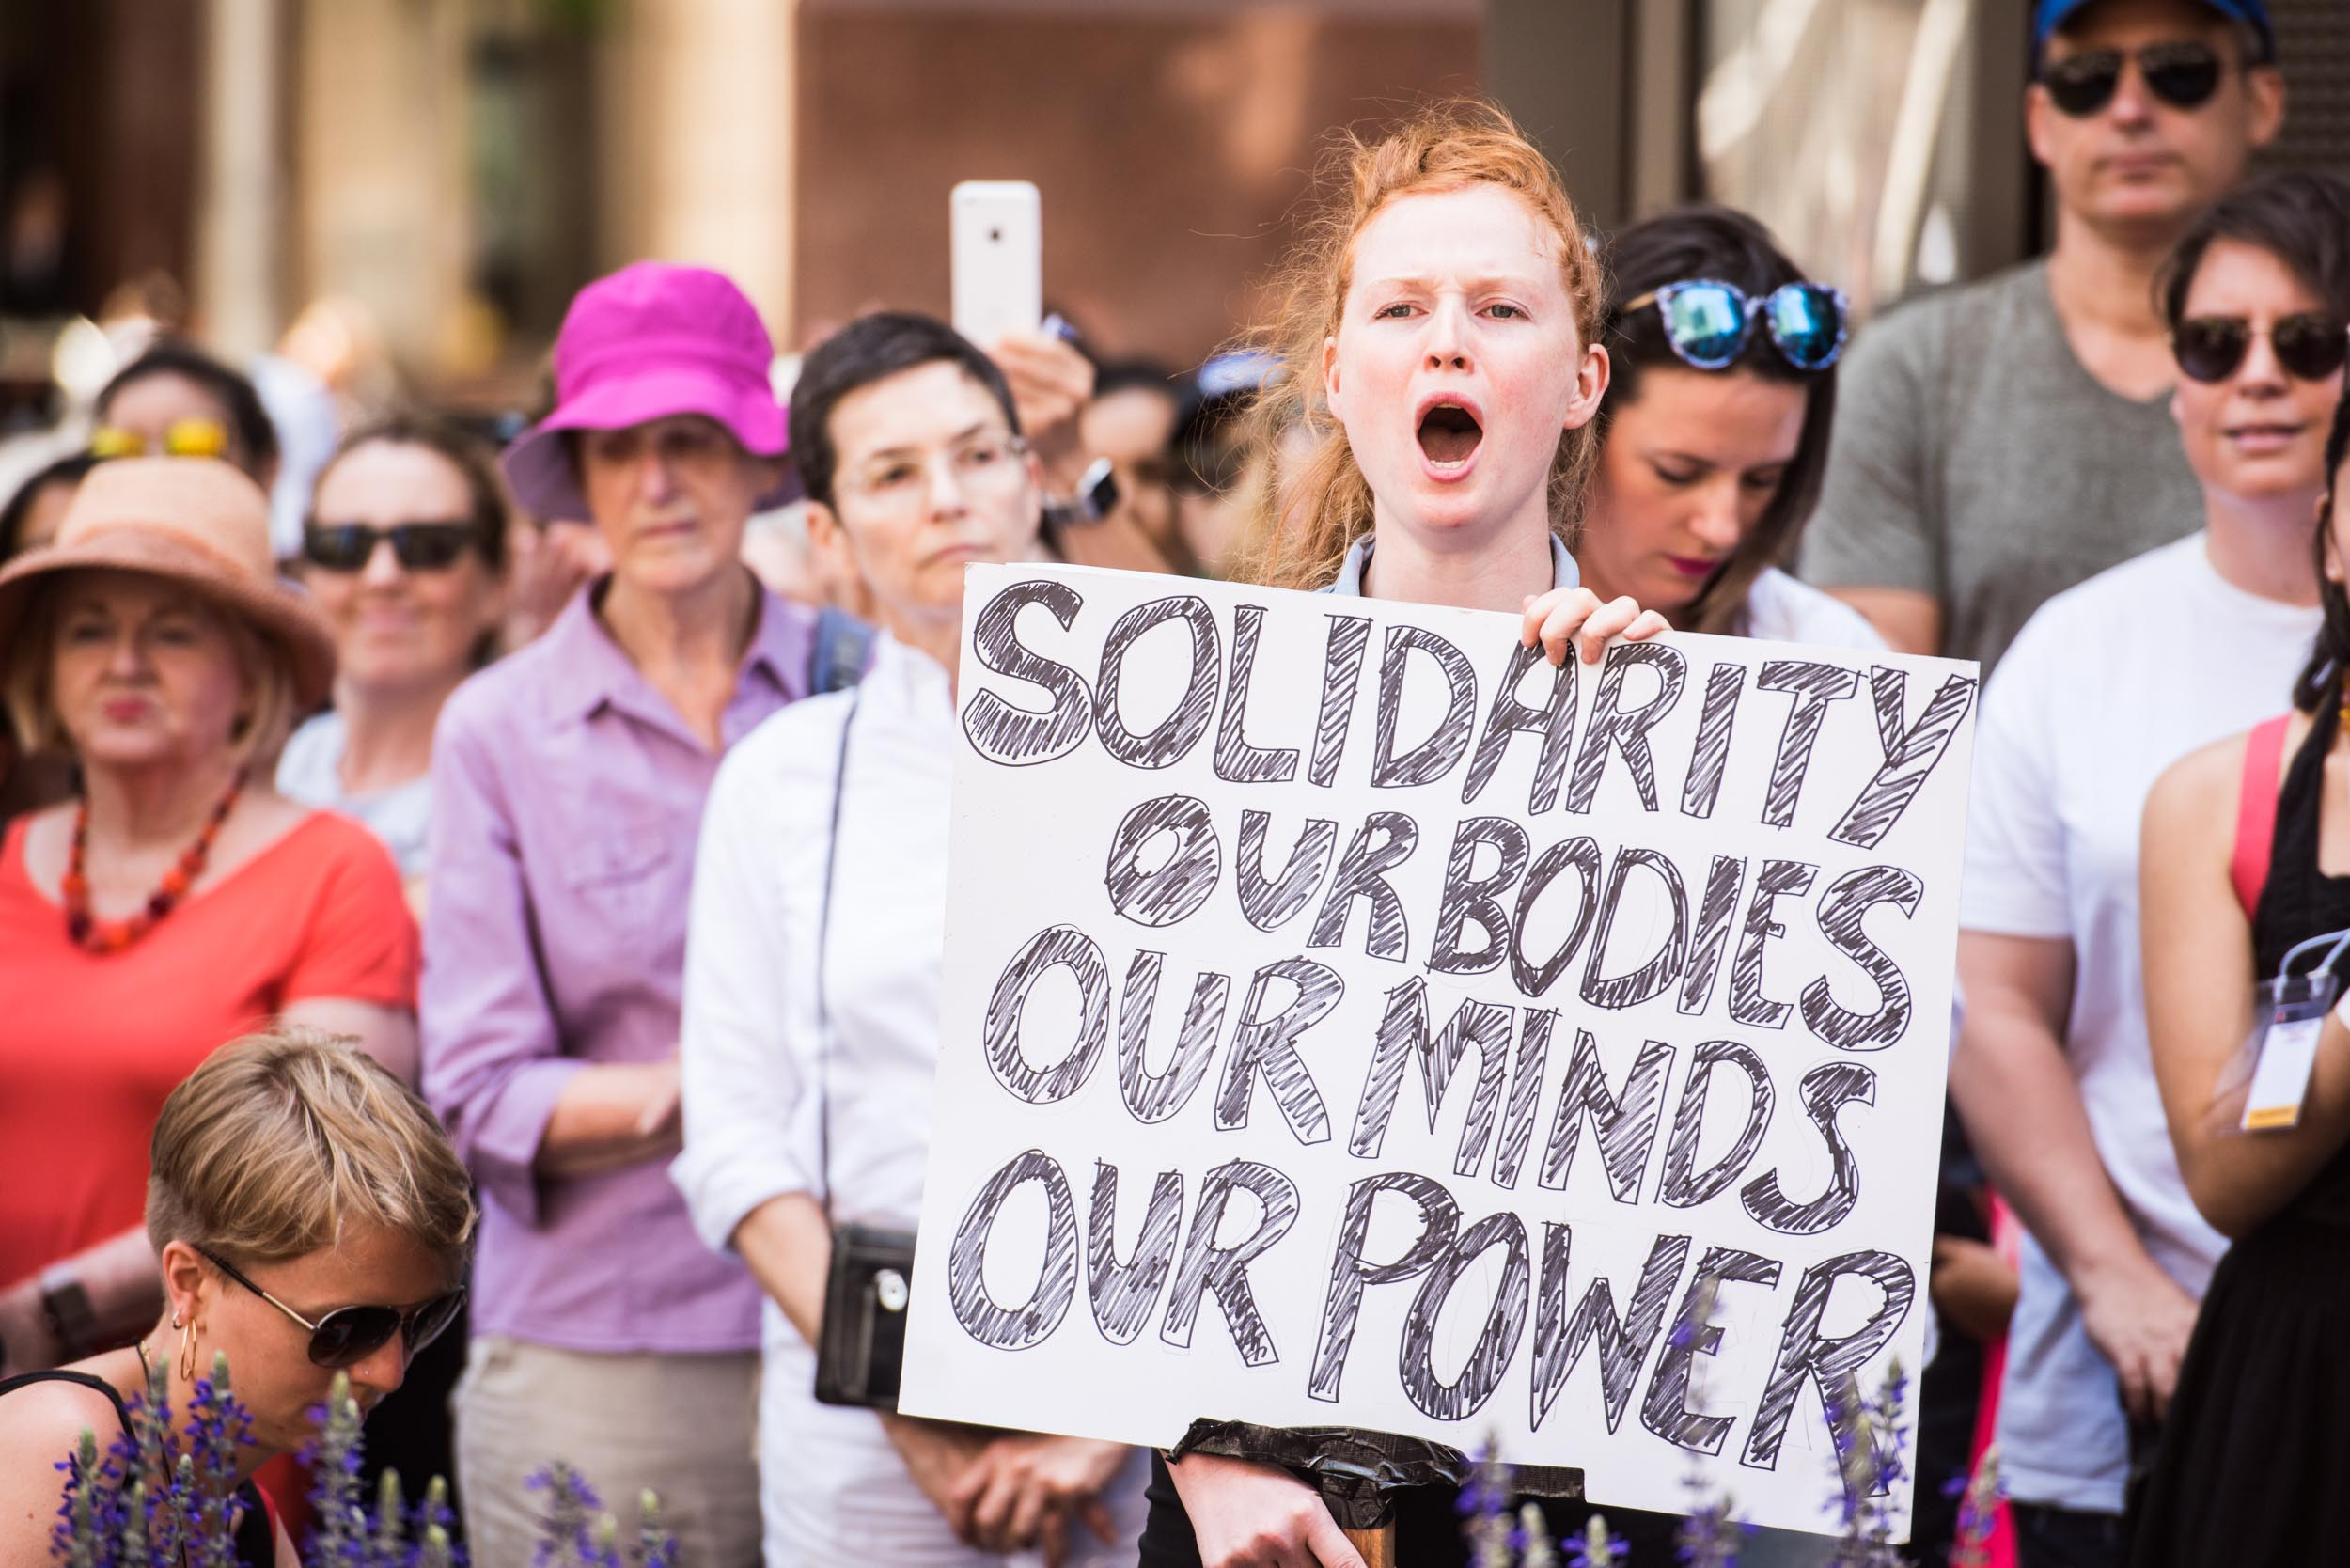 Solidarity womens march - Current events - Photo credit Nicola Bailey.jpg